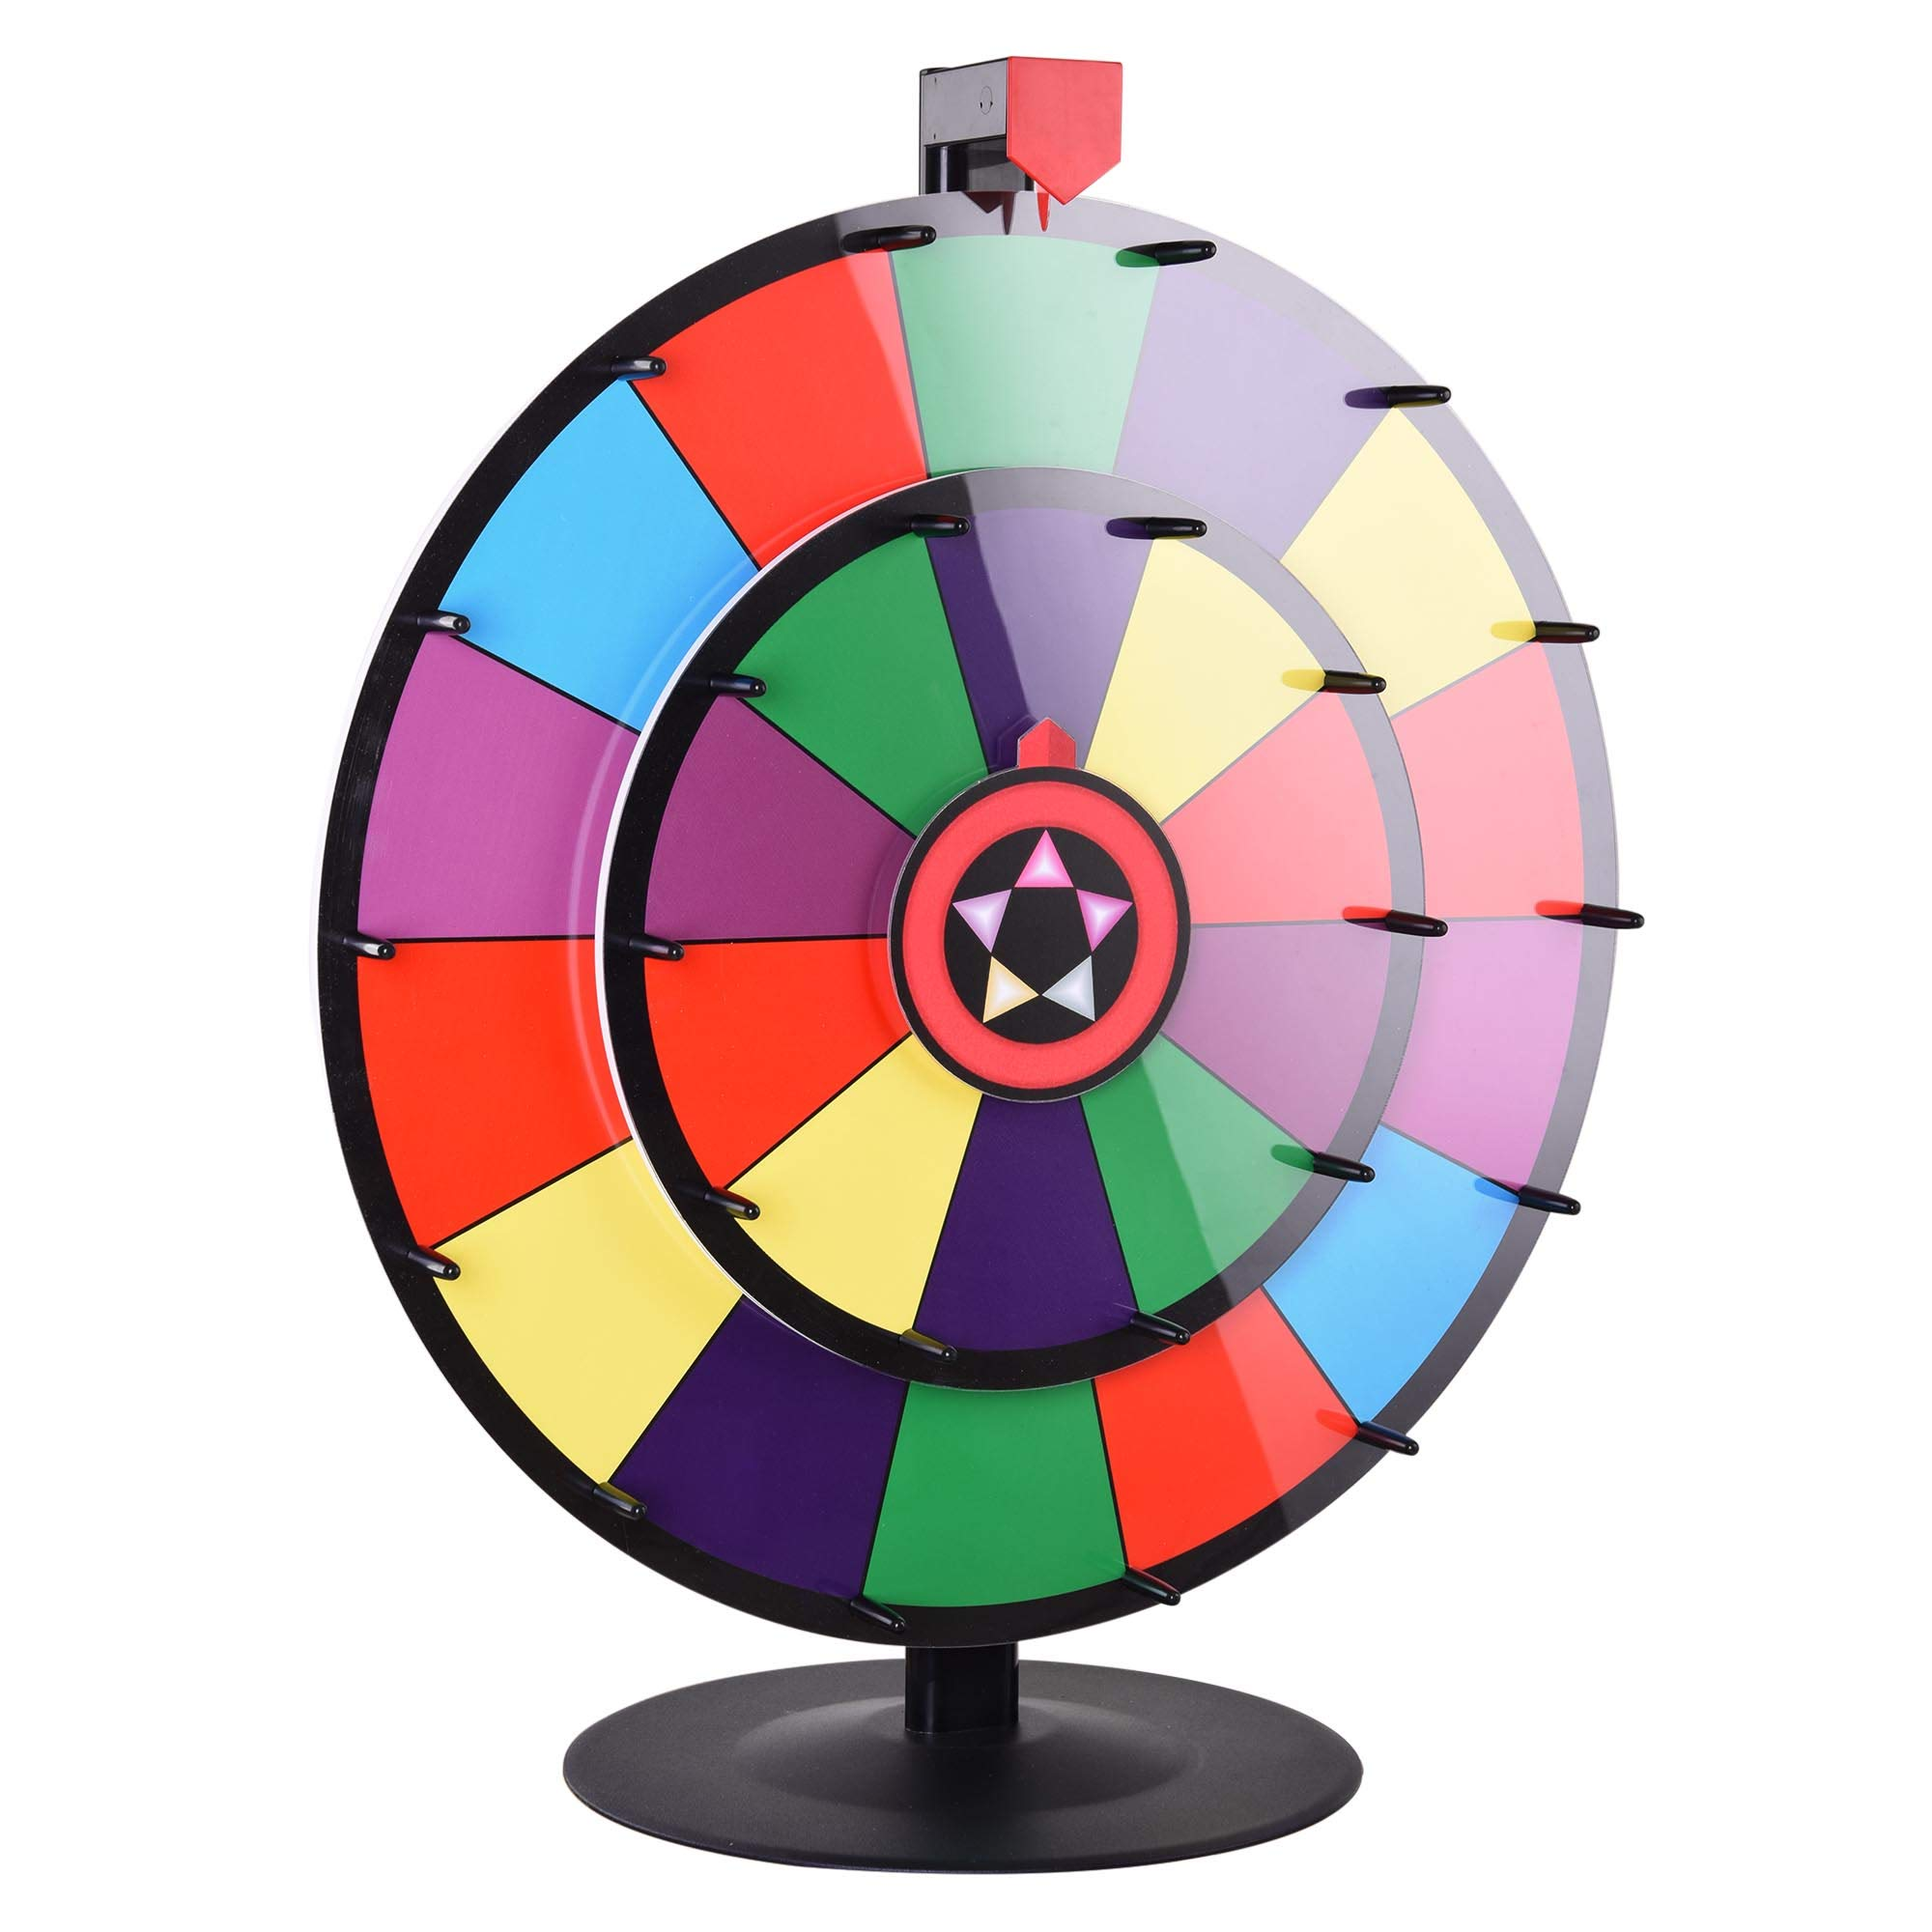 WinSpin 24'' Tabletop Spinning Prize Wheel Dual Wheels Editable Dry Erase Color Slot Tradeshow Fortune Spin Game